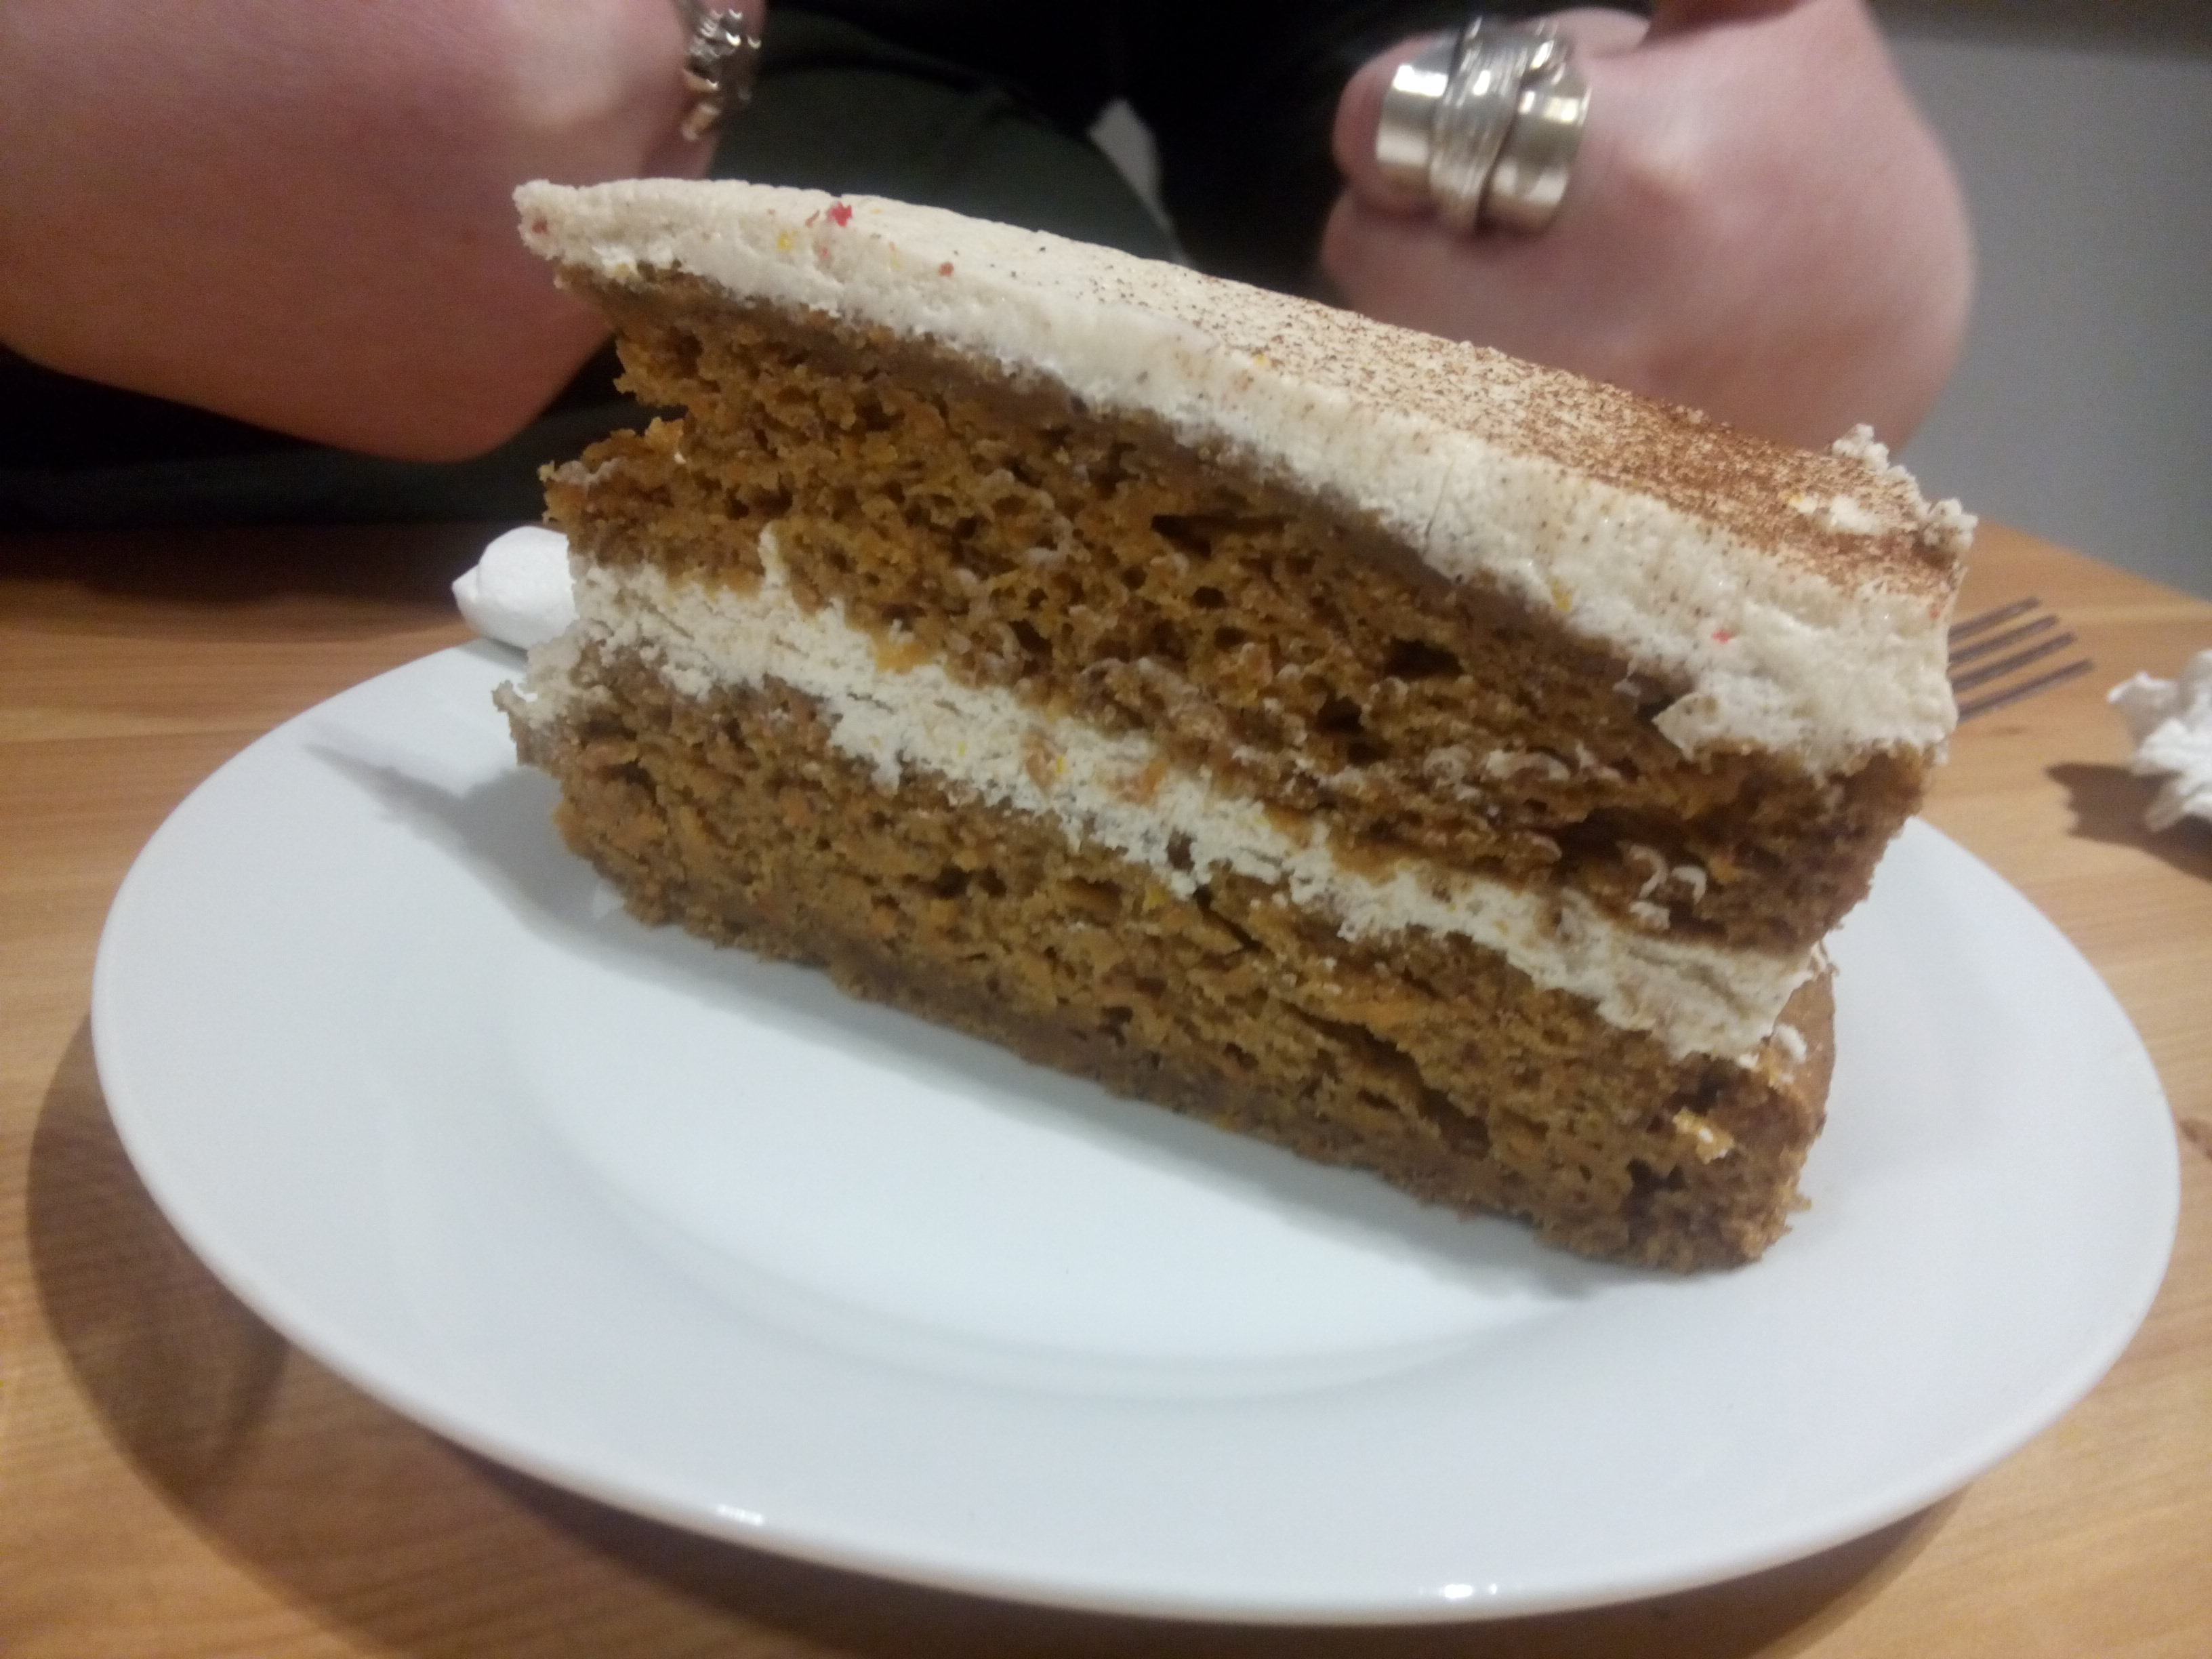 Carrot cake slice from the side on a plate